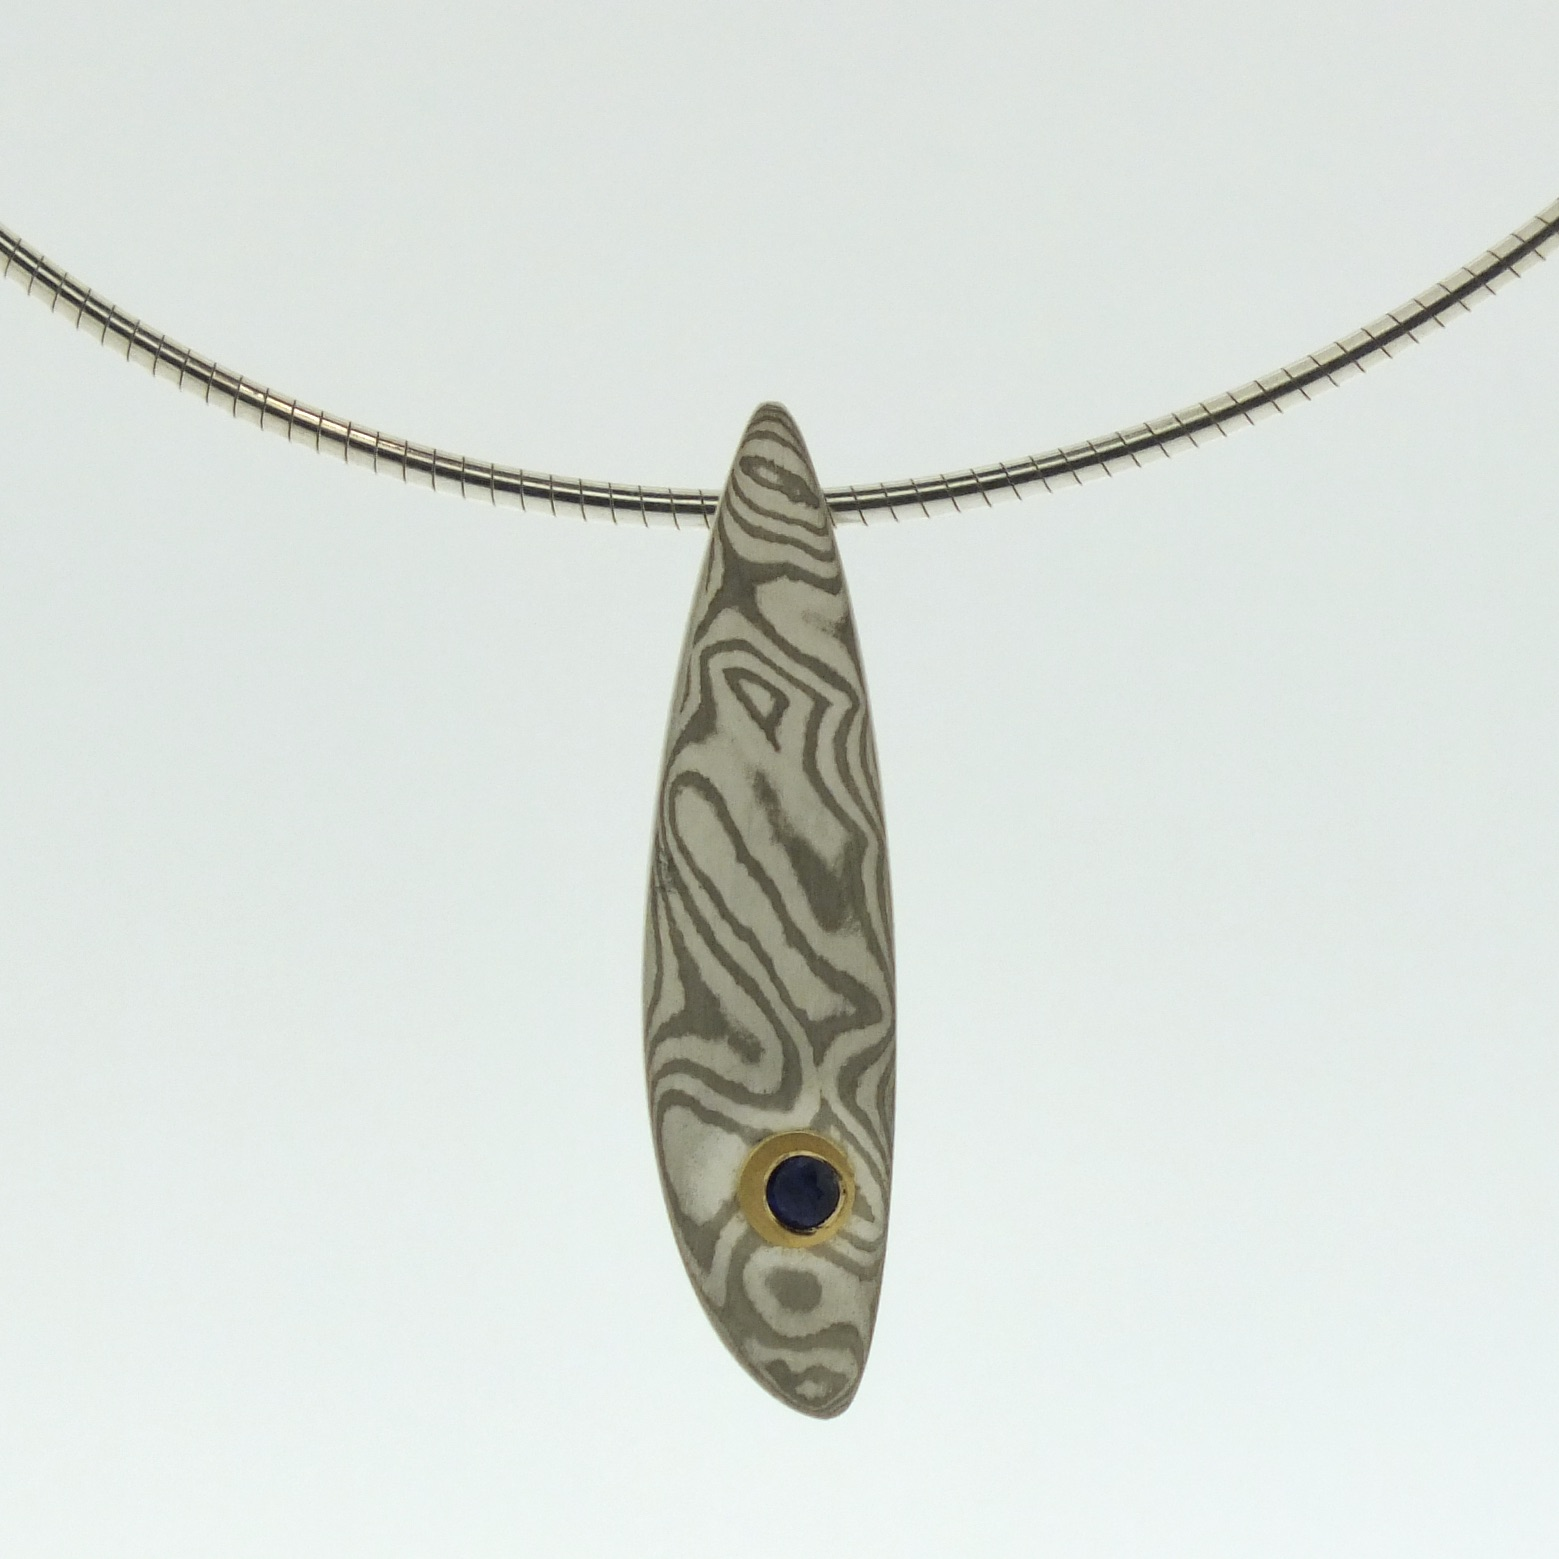 18k white gold and silver mokume gane small Sgiath pendant with blue sapphire in 22k gold setting